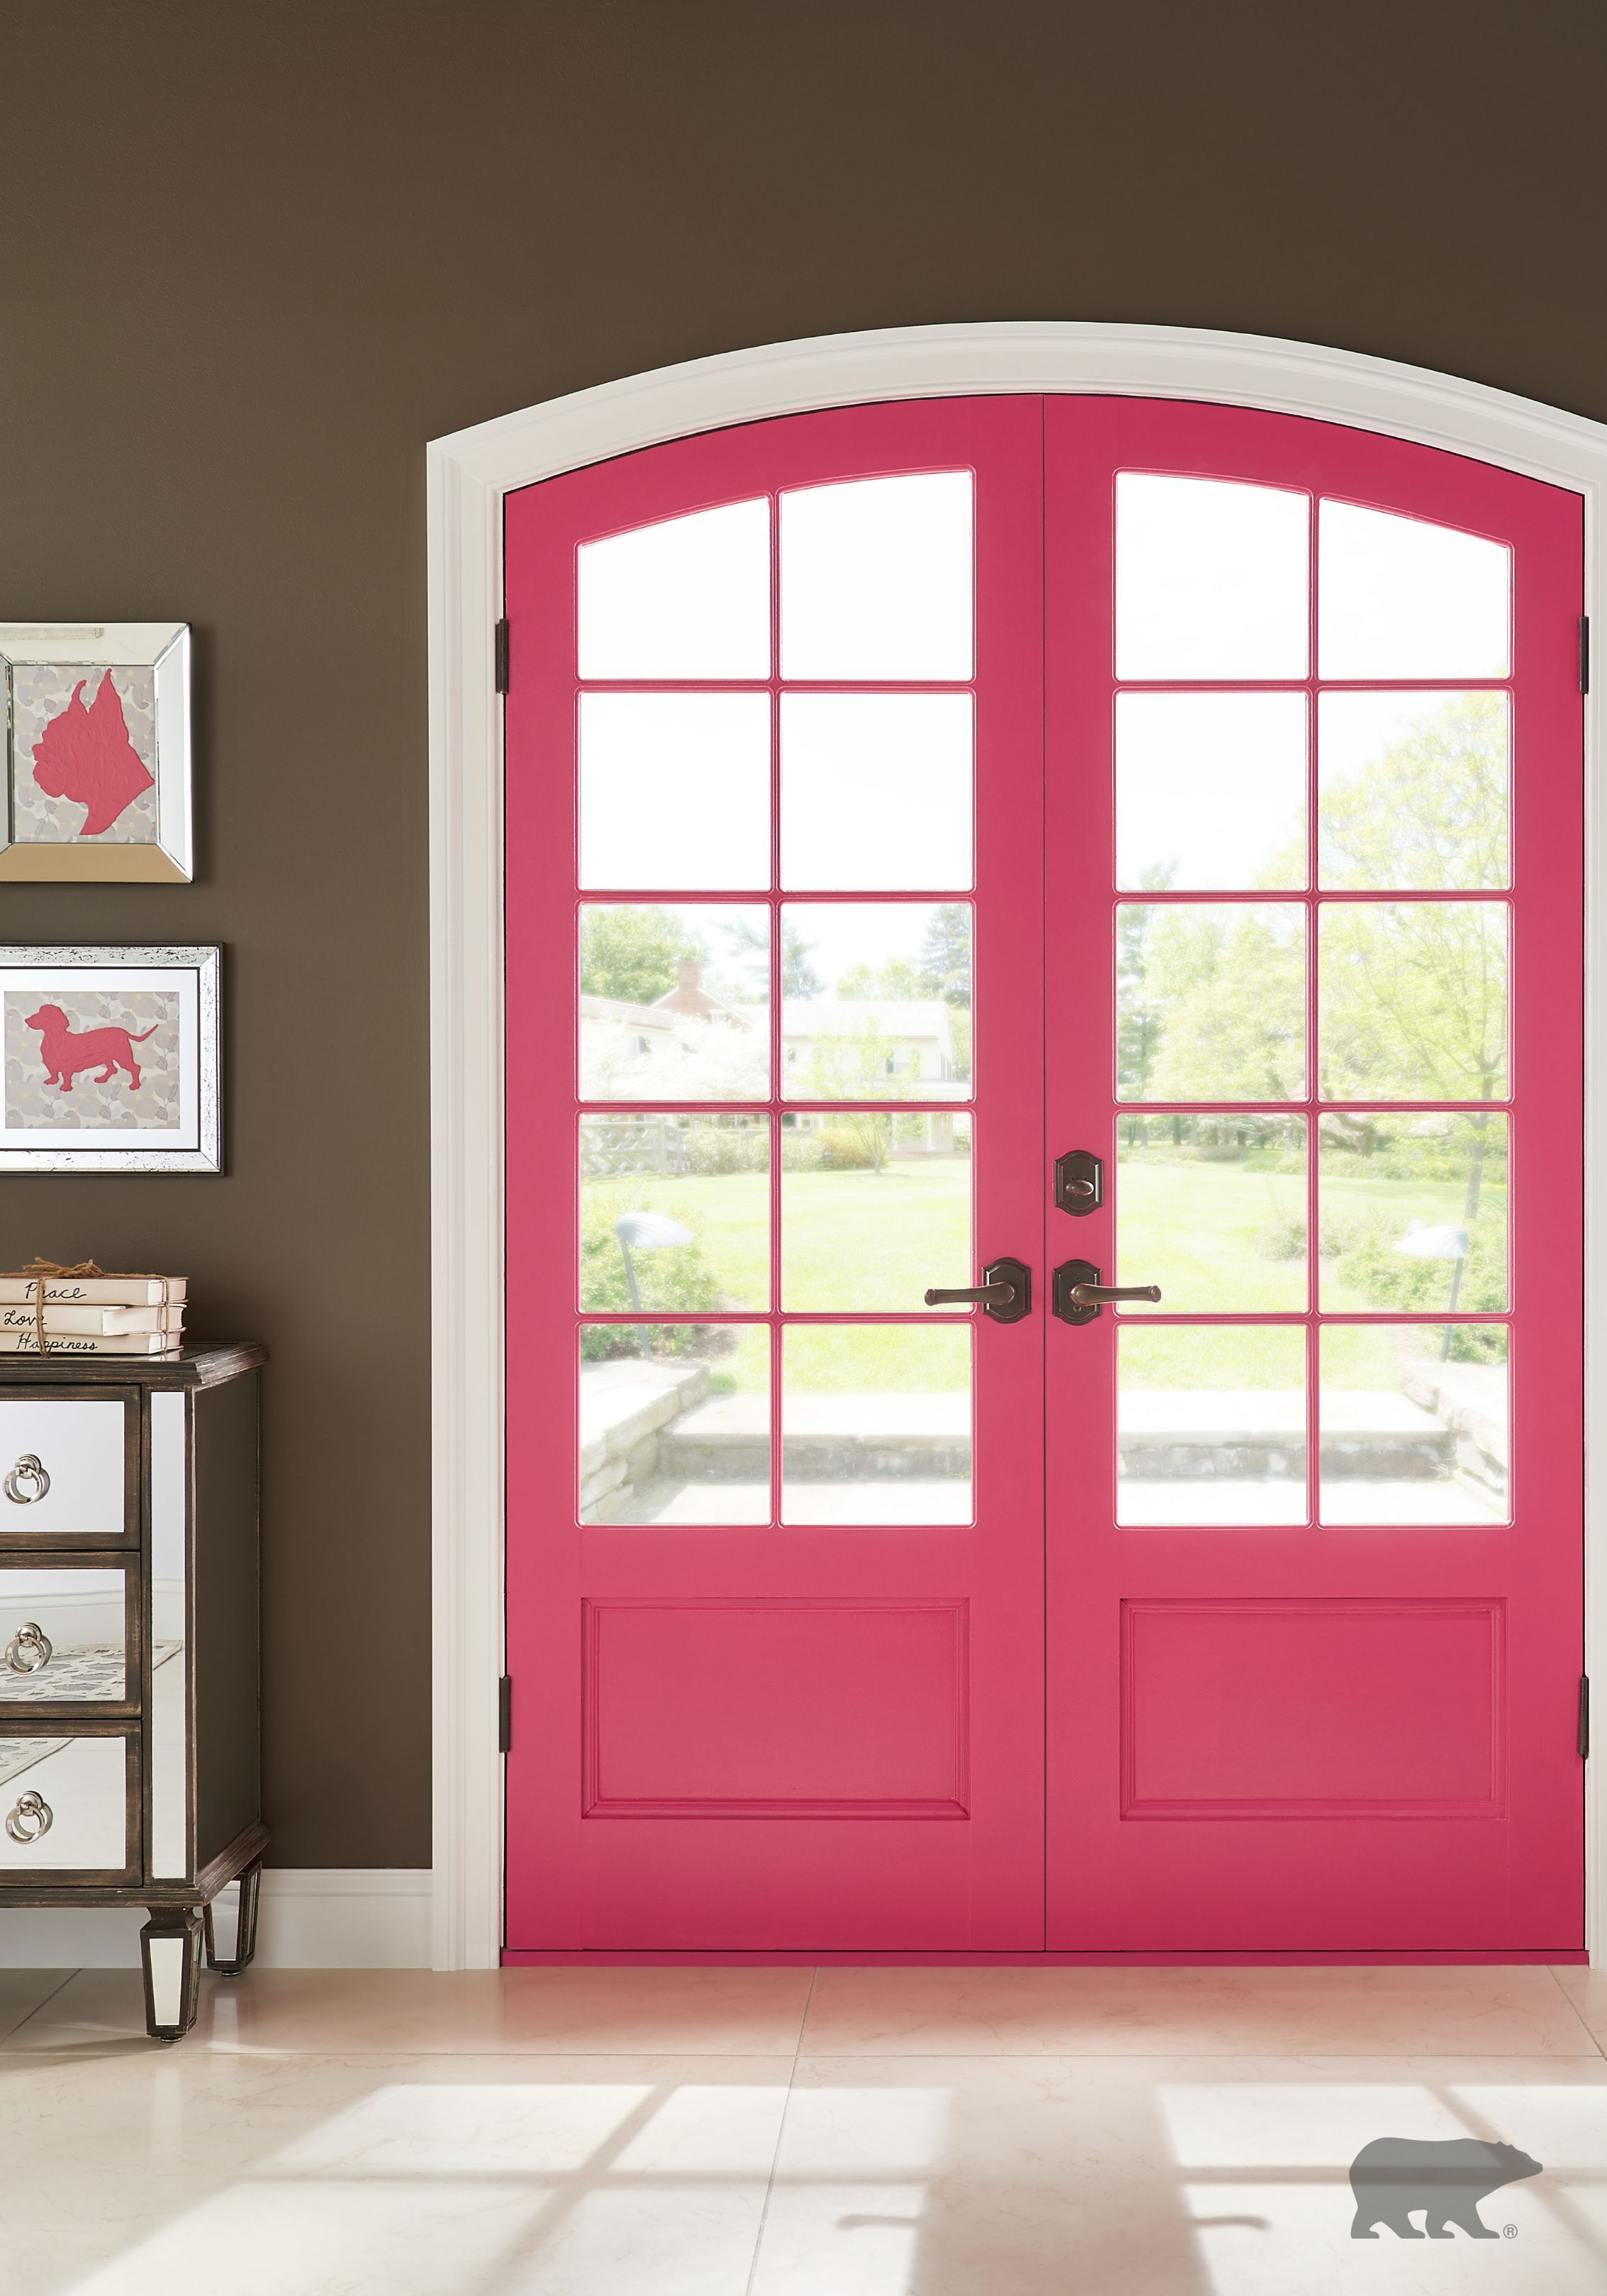 Update Your Entryway With A Bold Color From BEHR Paint To Give Your Foyer  An Eclectic